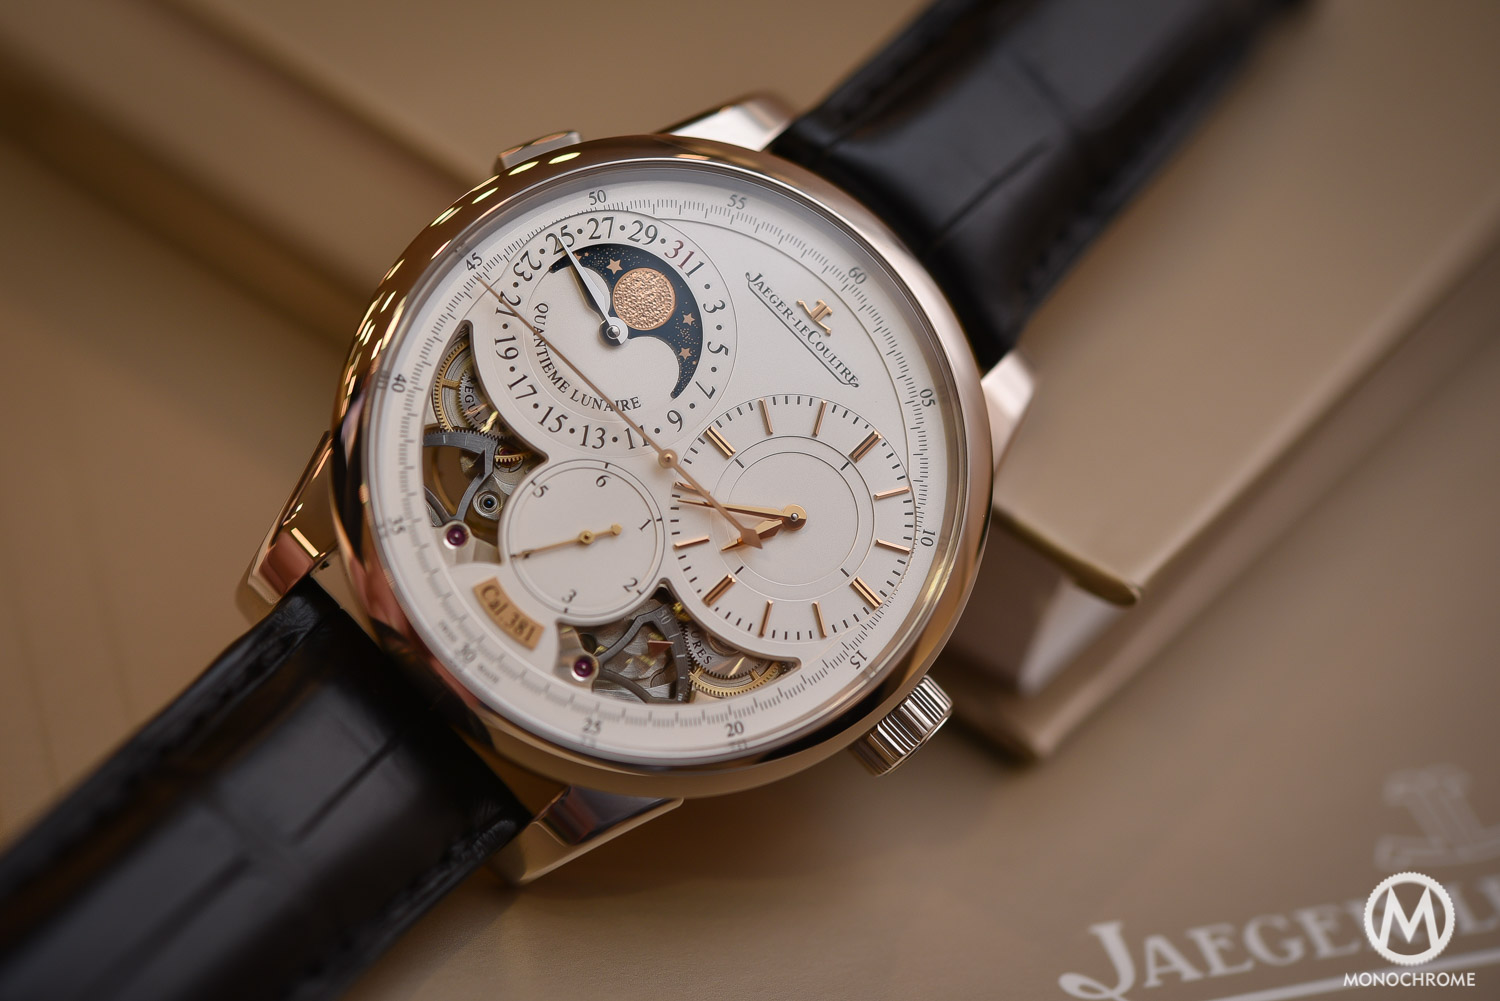 Jaeger-LeCoultre Duometre Quantieme Lunaire in white gold and opened dial - 5